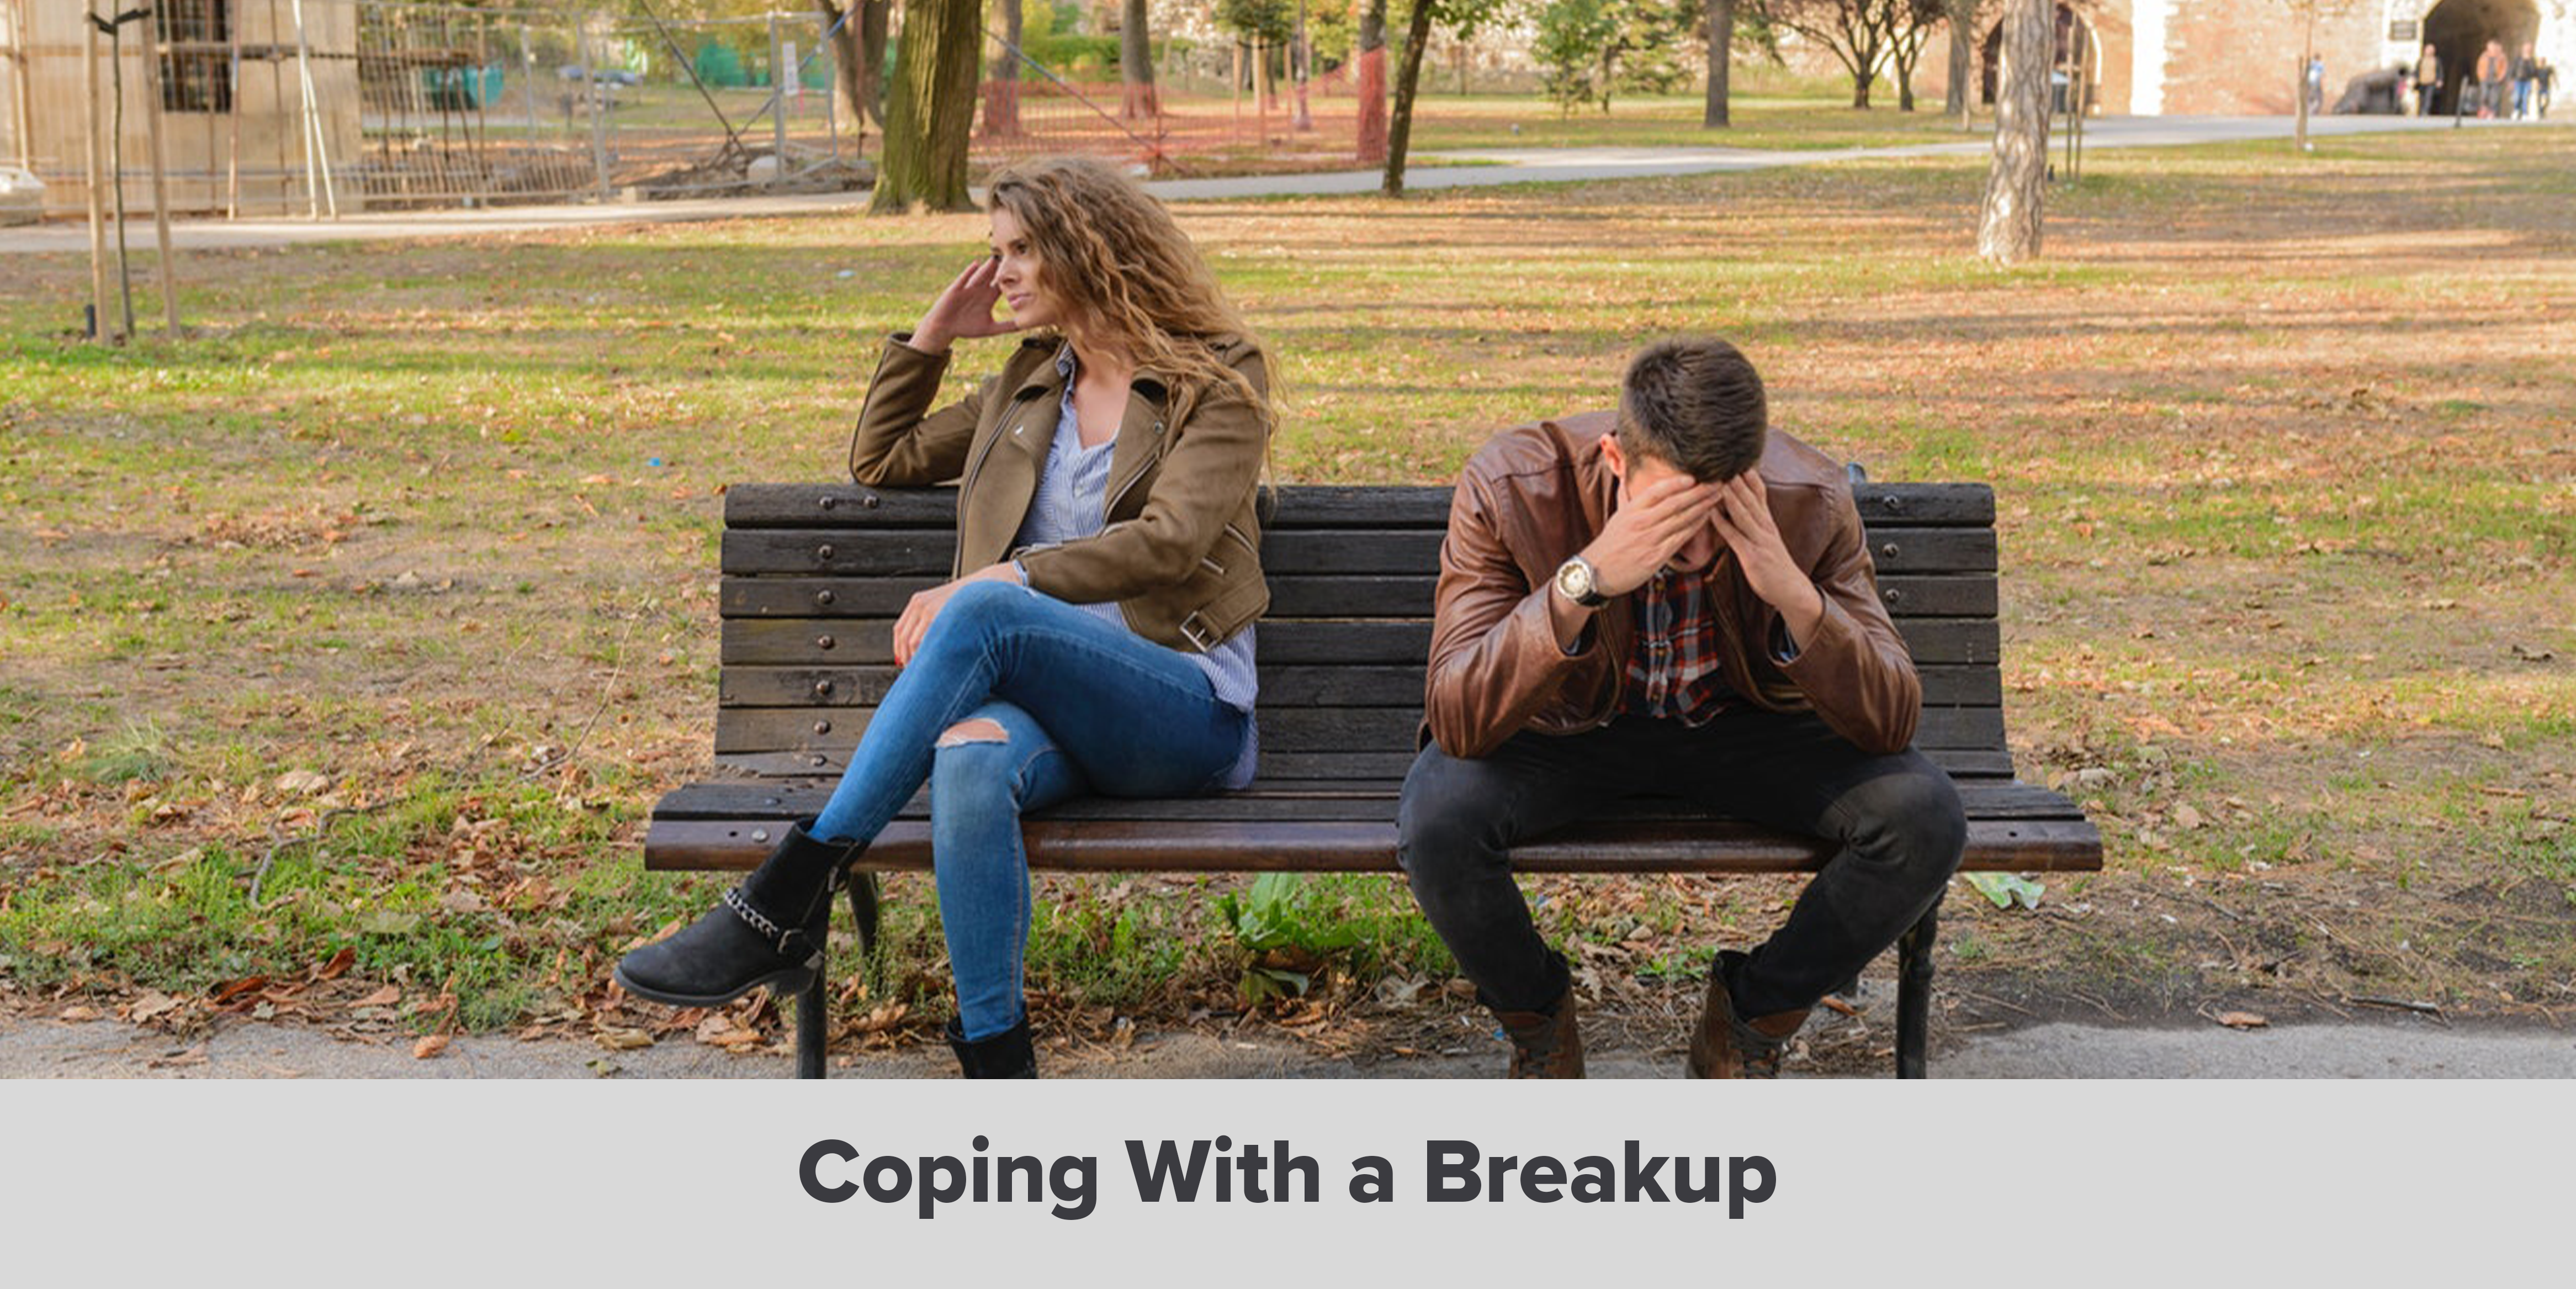 Coping With a Breakup